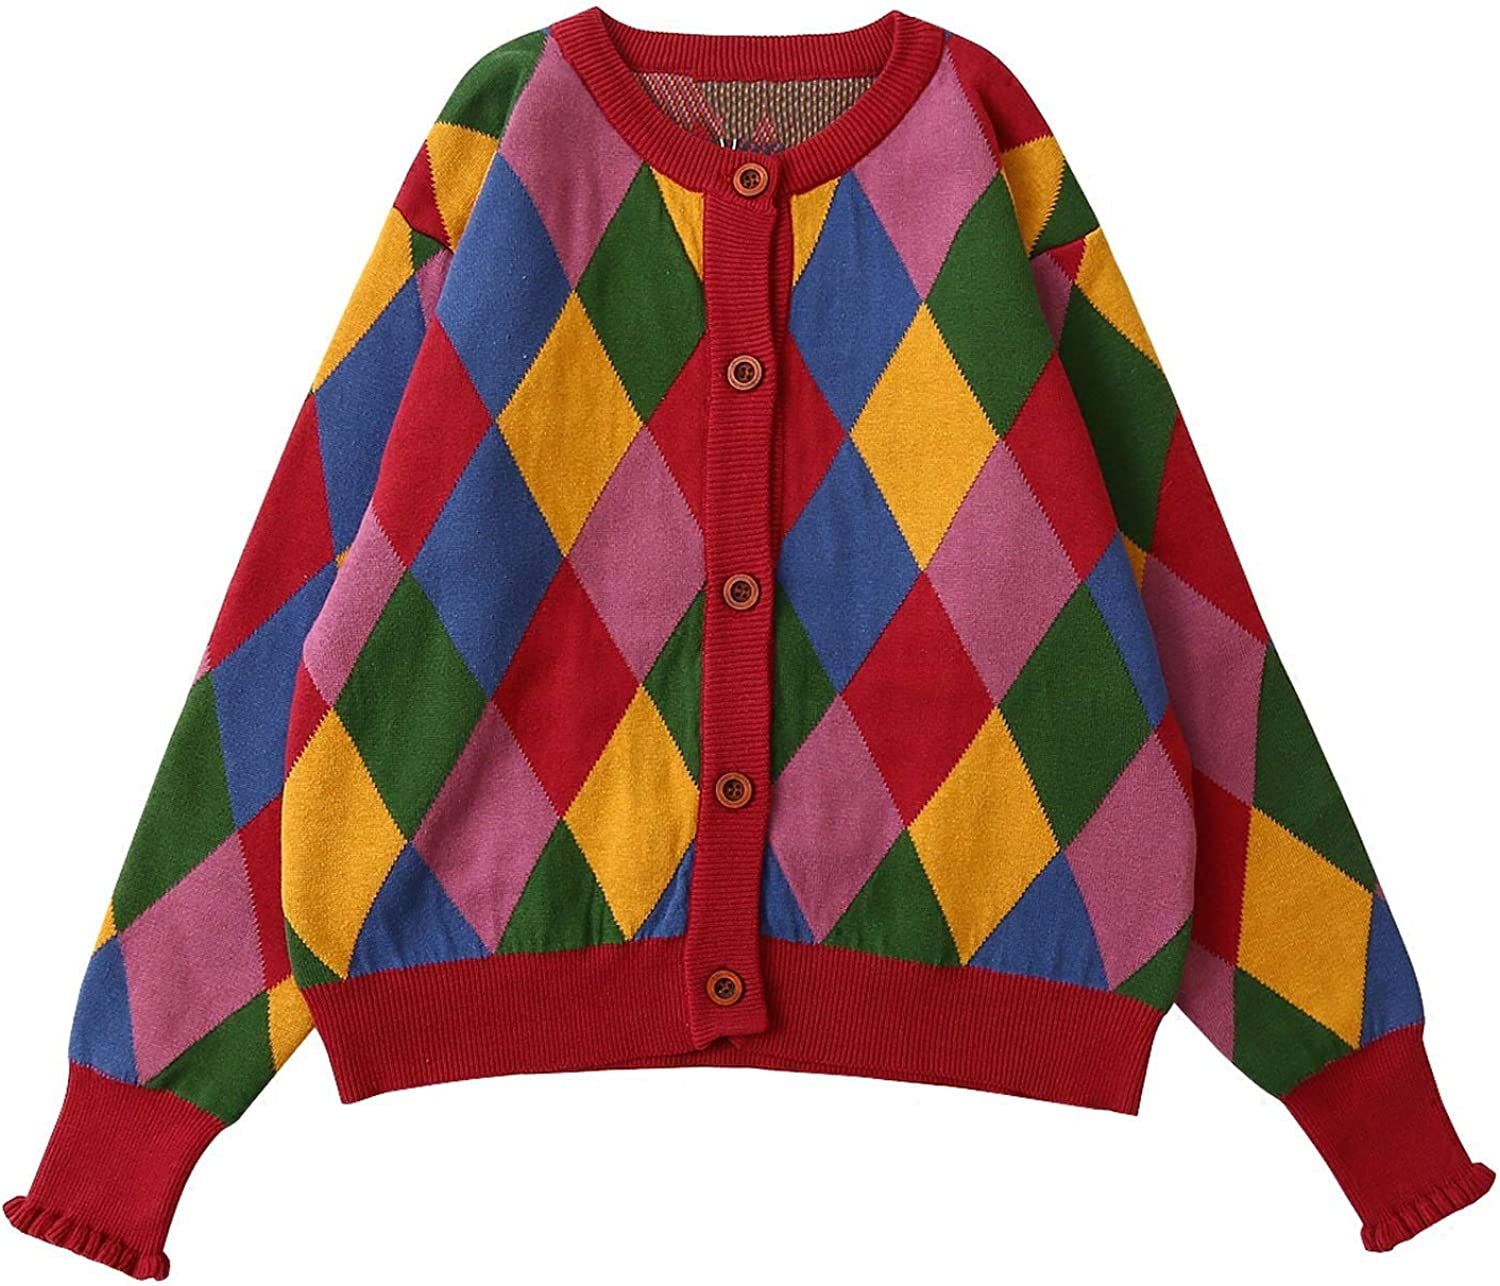 Don't mention the past 2019 Winter Sweater New Women Knit Cardigan Coat Vintage Diamond Plaid Knitwear Warm Cotton Female Thick Sweater,Multi,One Size